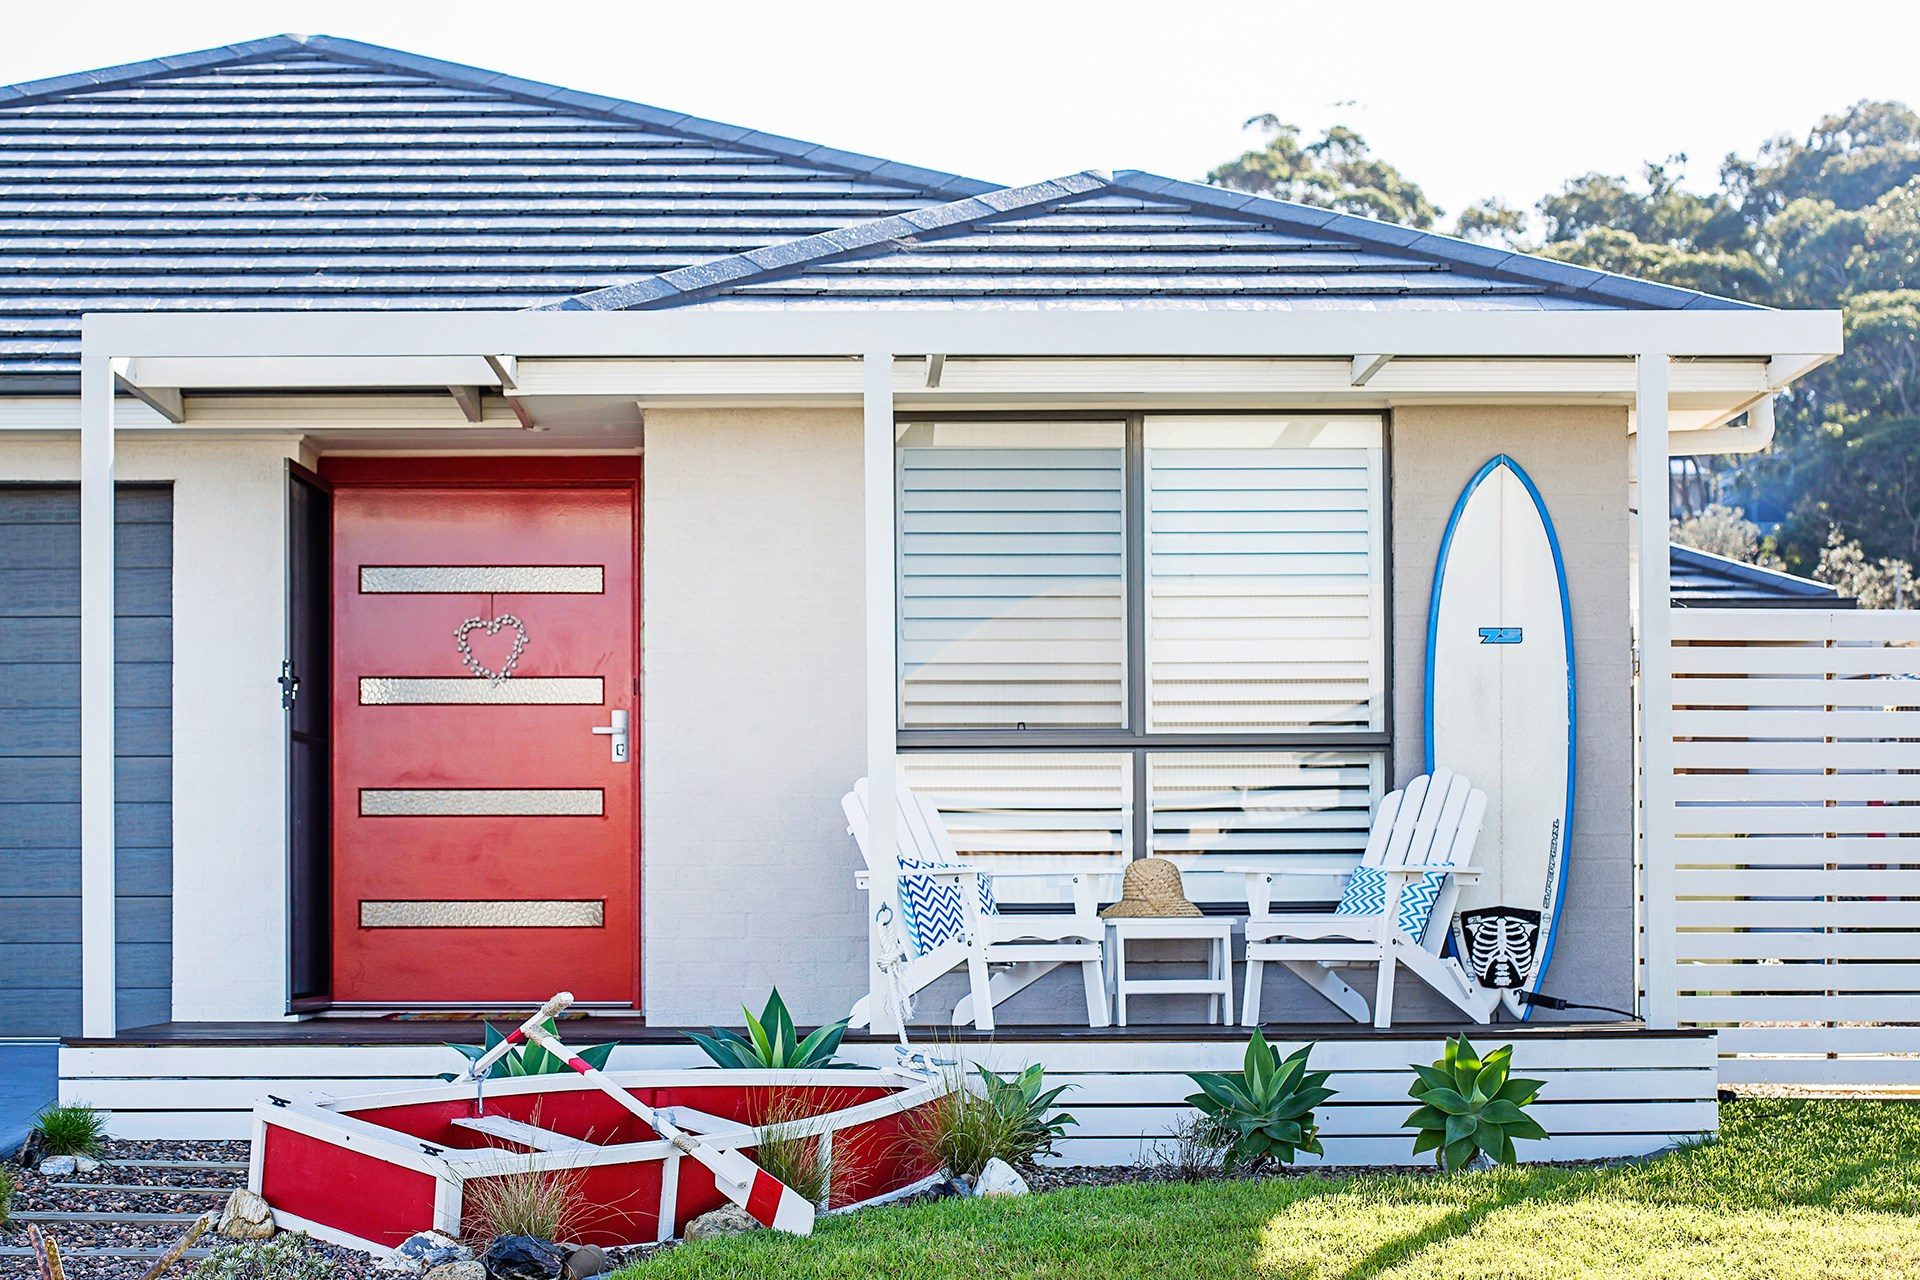 **Suanne Osti** After downsizing three years ago this couple moved to Barlings Beach on the south side of Batemans Bay, and got stuck into decorating this three-bed single storey house. [See the full home here](http://www.homestolove.com.au/empty-nesters-embrace-coastal-style-2918) or [vote for this home](http://www.homestolove.com.au/homes-reader-home-of-the-year-4499).